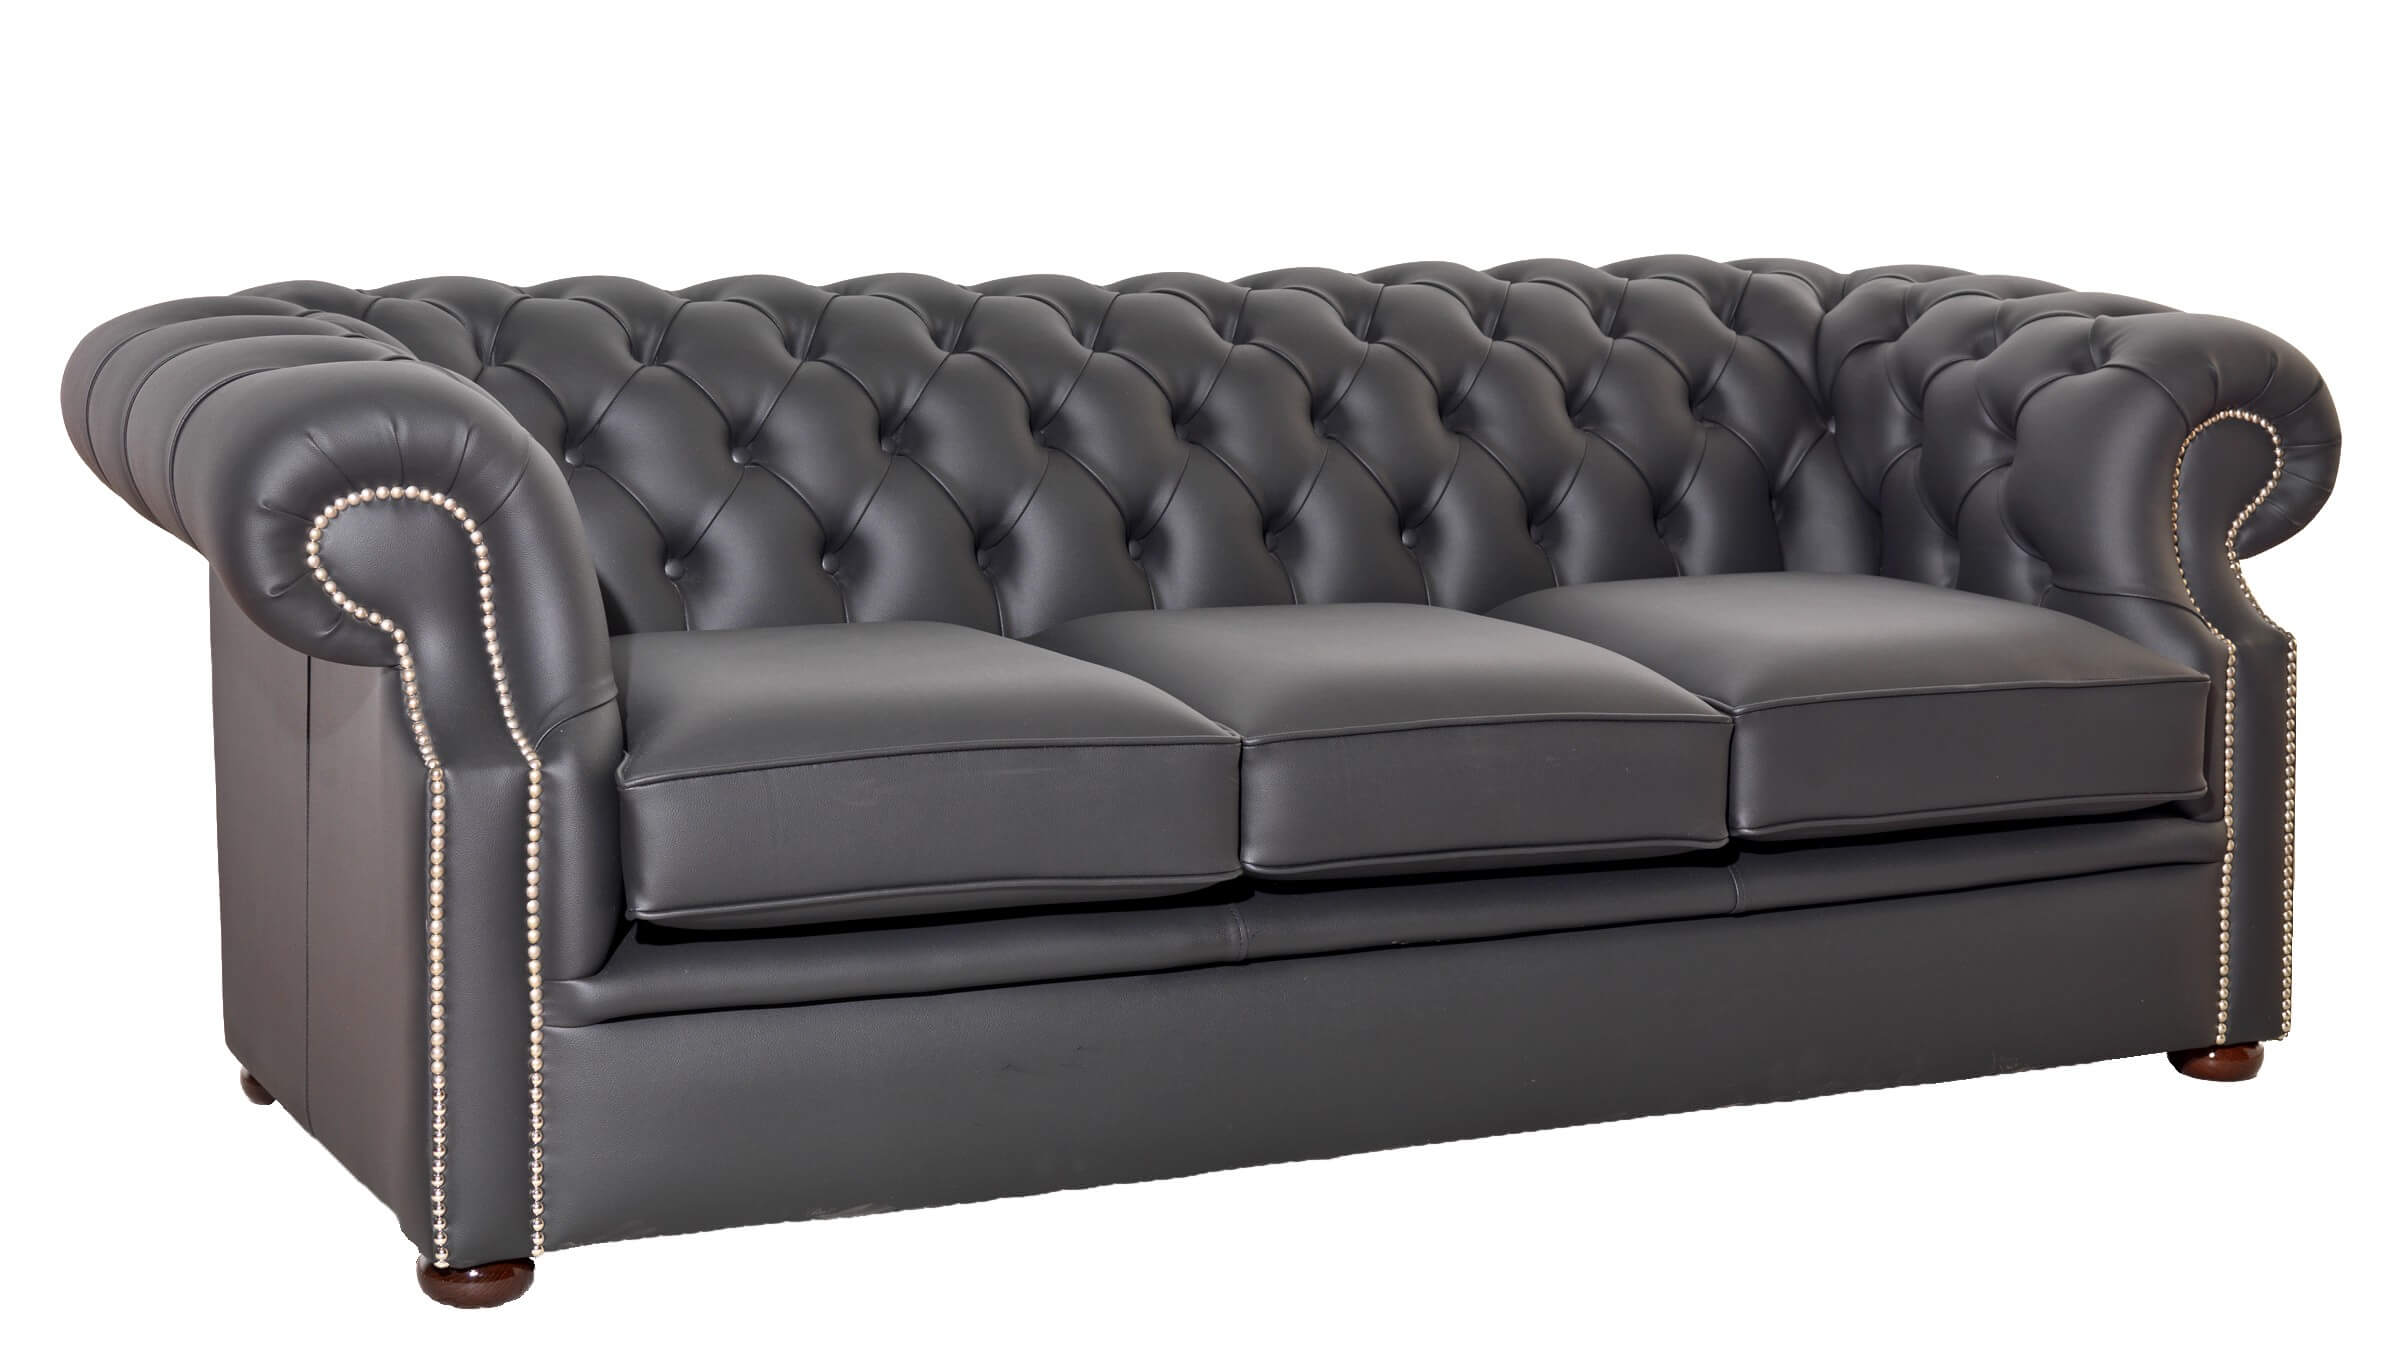 Chesterfield Sofa in India,Chesterfield Sofa Manufacturers in India,Chesterfield Sofa Suppliers